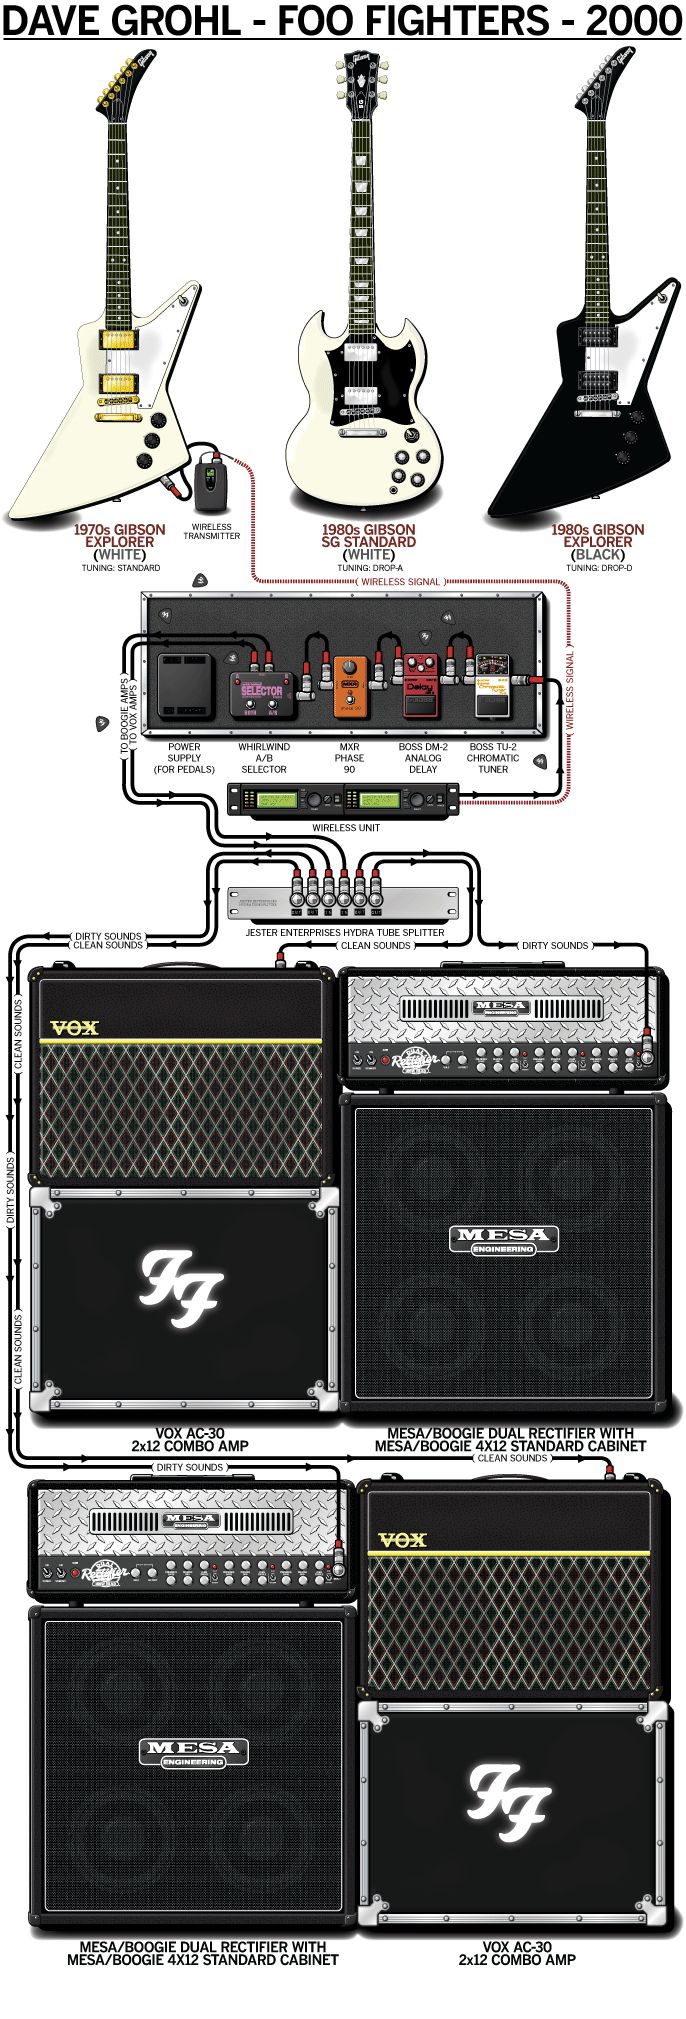 Buy a Poster of Dave Grohl's 2000 Foo Fighters State Setup